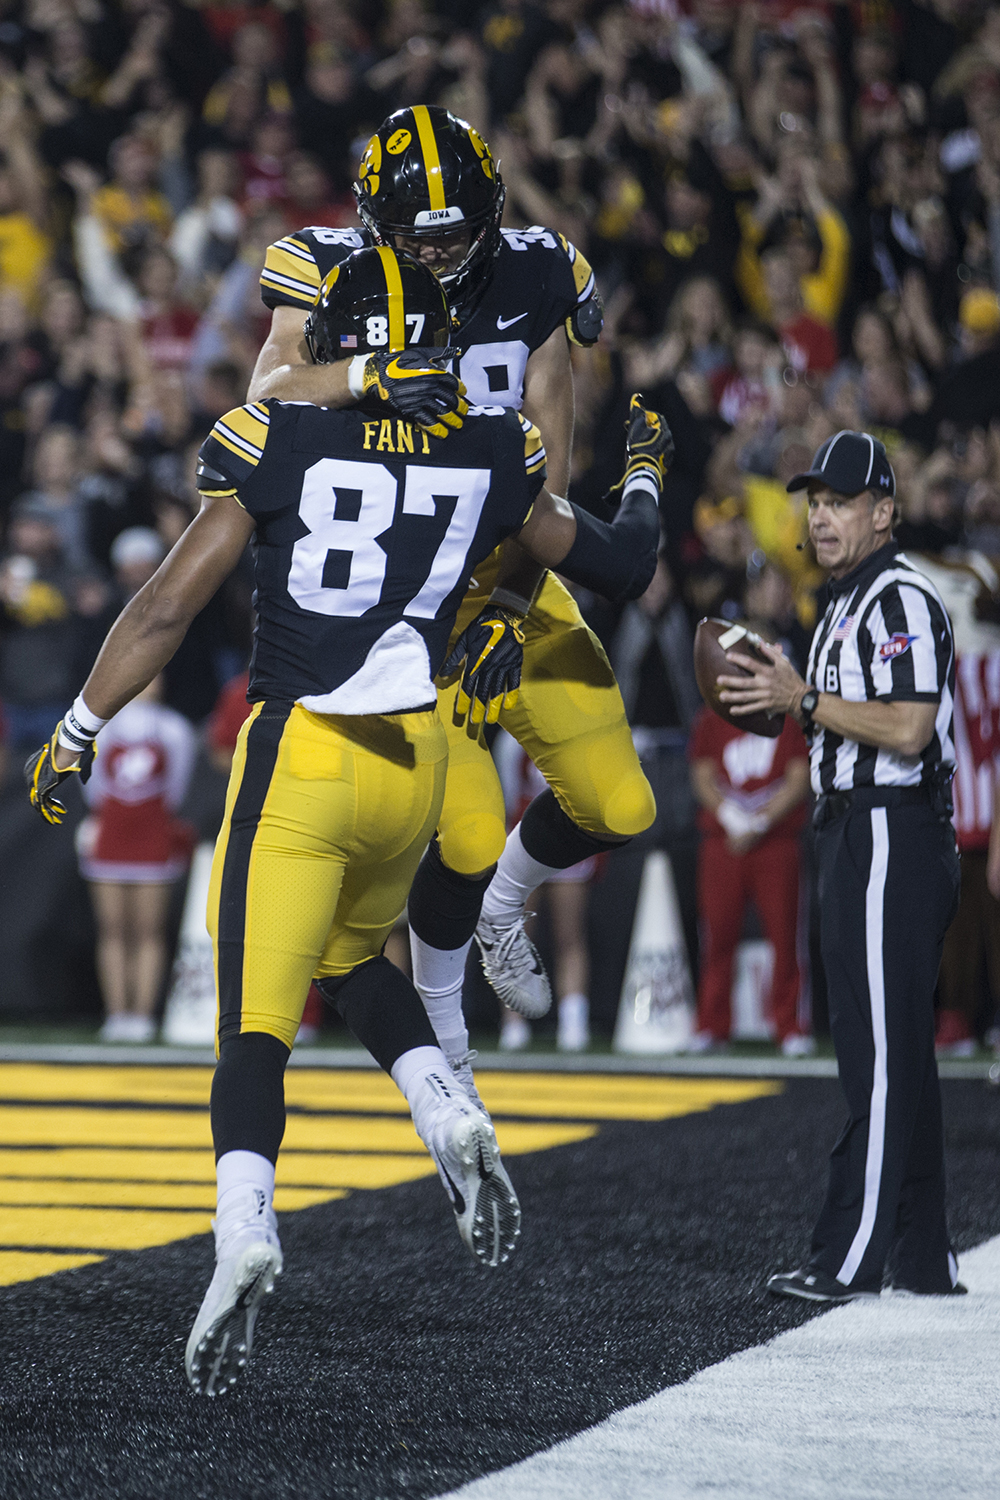 Iowa%27s+Noah+Fant+and+TJ+Hockenson+celebrate+a+touchdown+during+a+football+game+between+Iowa+and+Wisconsin+on+Saturday%2C+September+22%2C+2018.+The+Badgers+defeated+the+Hawkeyes%2C+28-17.+%28Shivansh+Ahuja%2FThe+Daily+Iowan%29